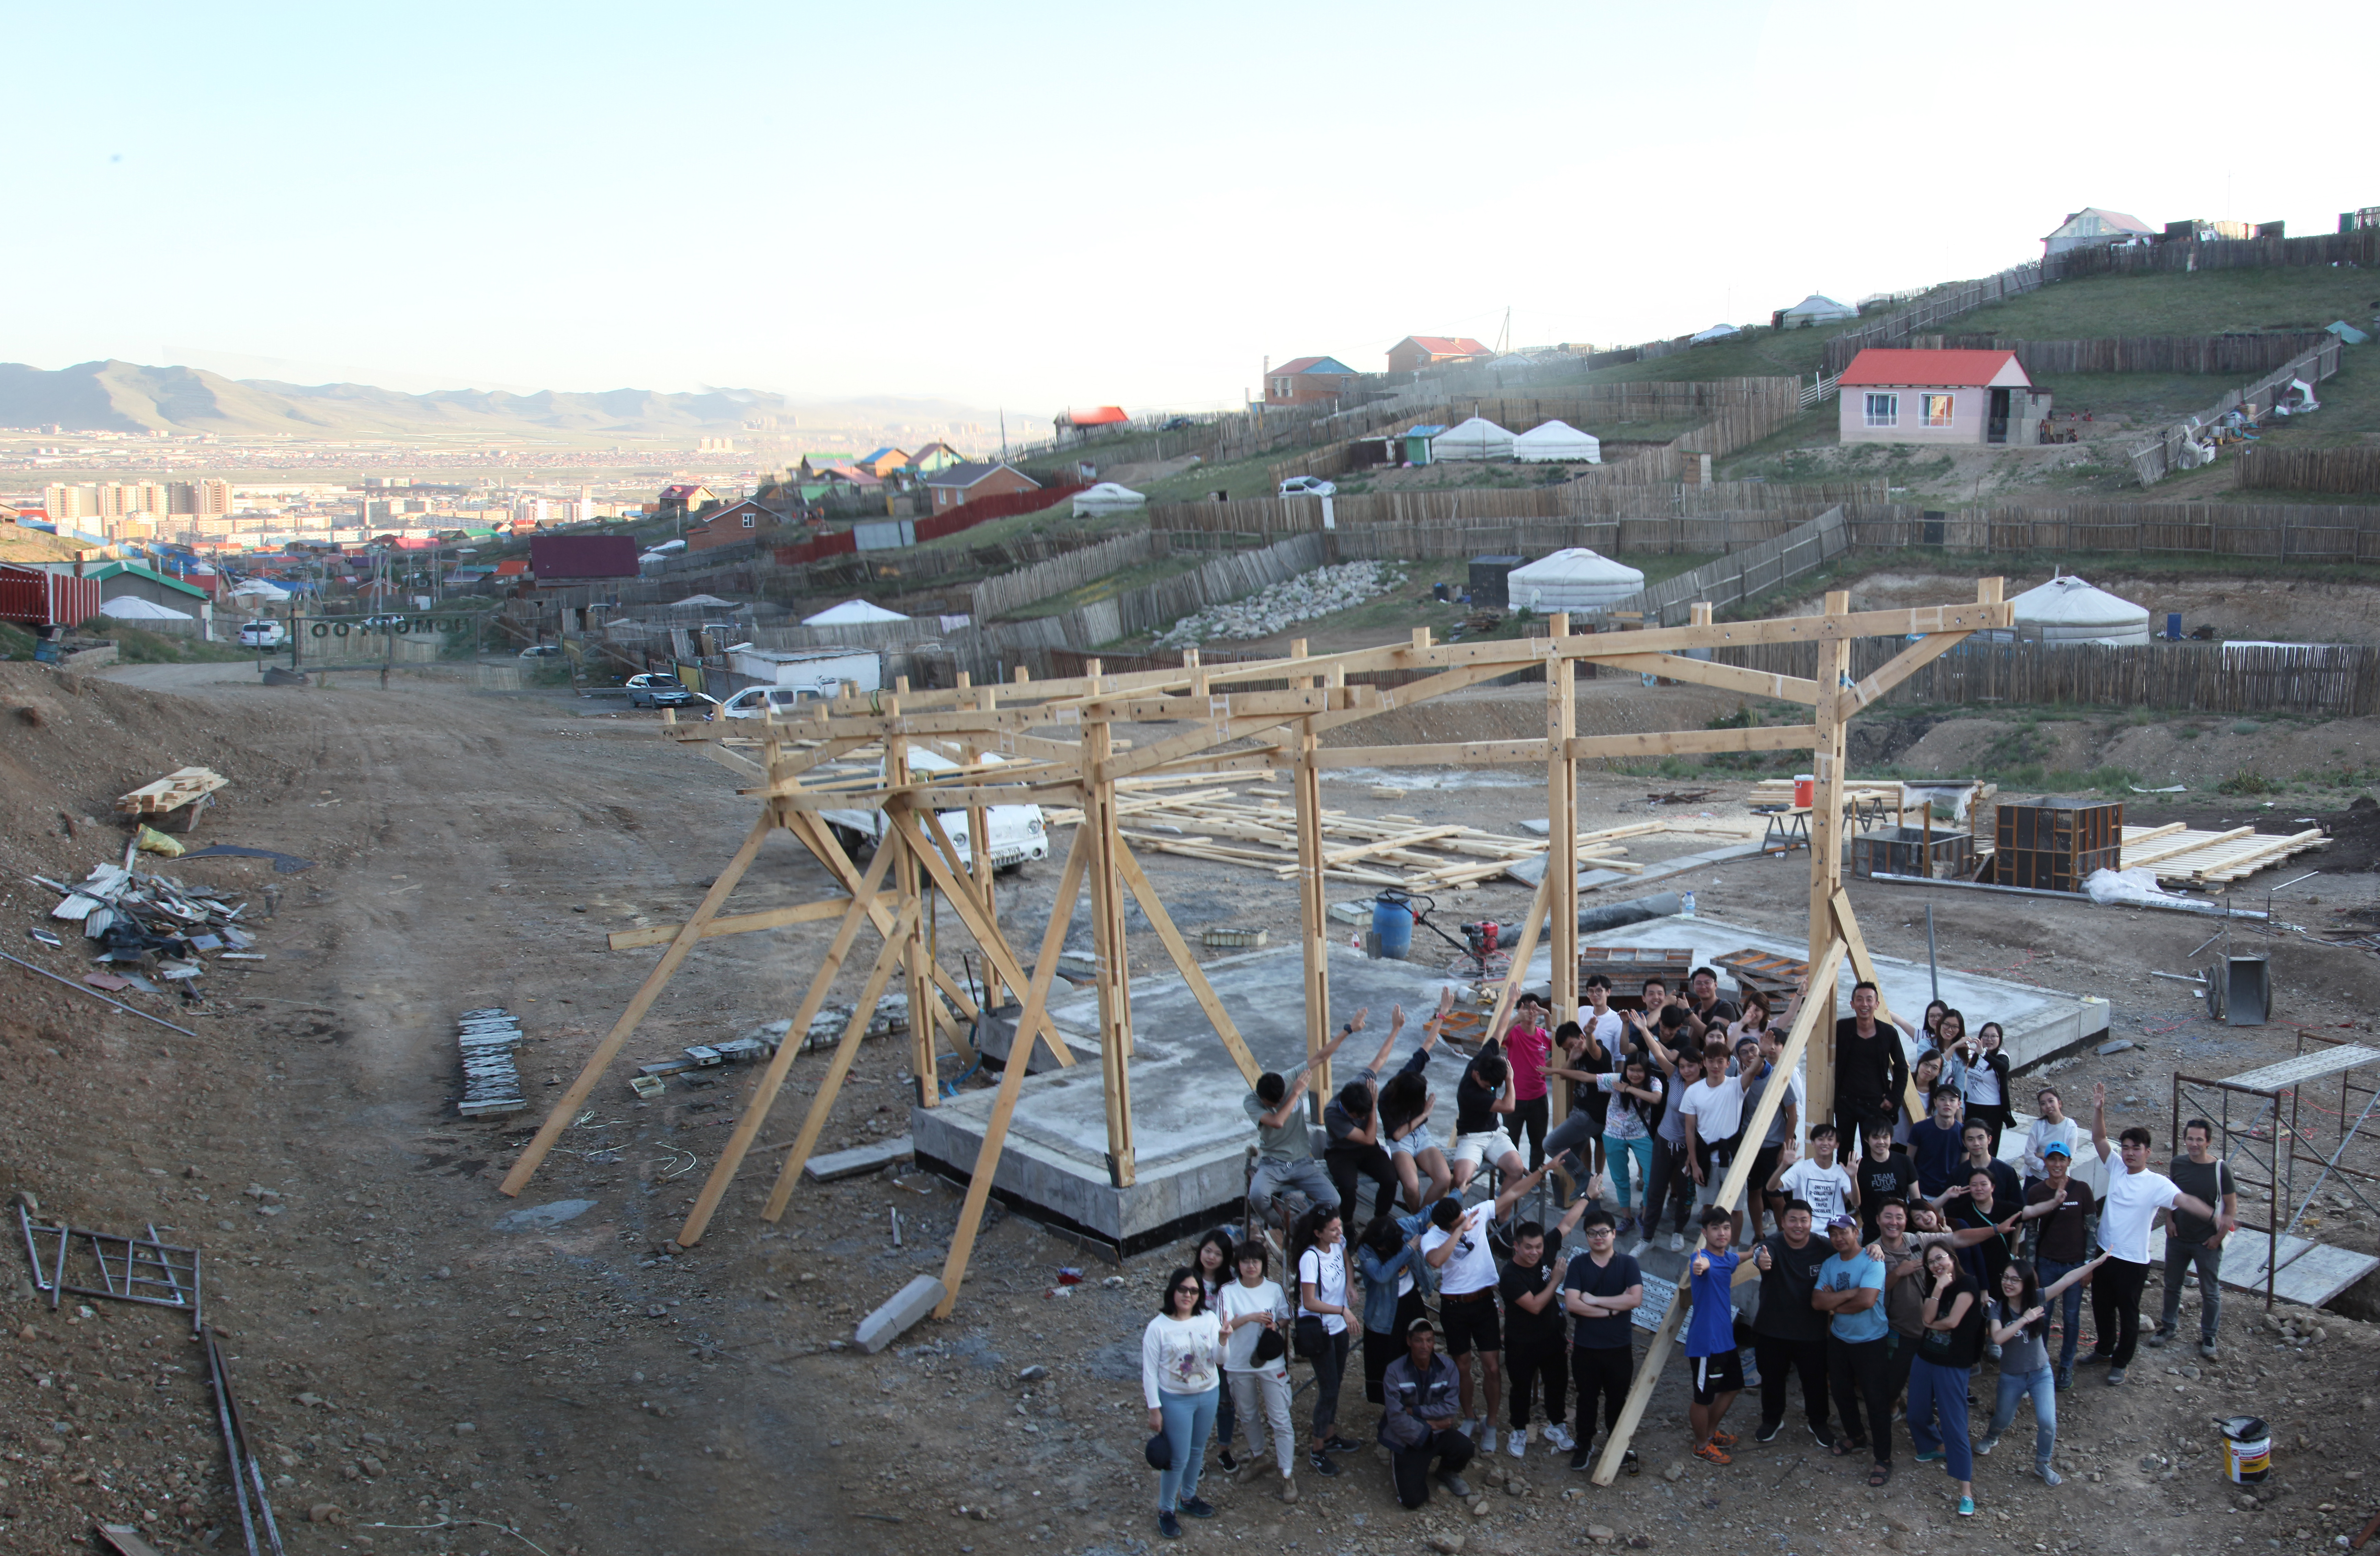 Students amassed in a construction site next to a partially constructed wooden framework. Individual ger plots can be seen on the hills in the distance.